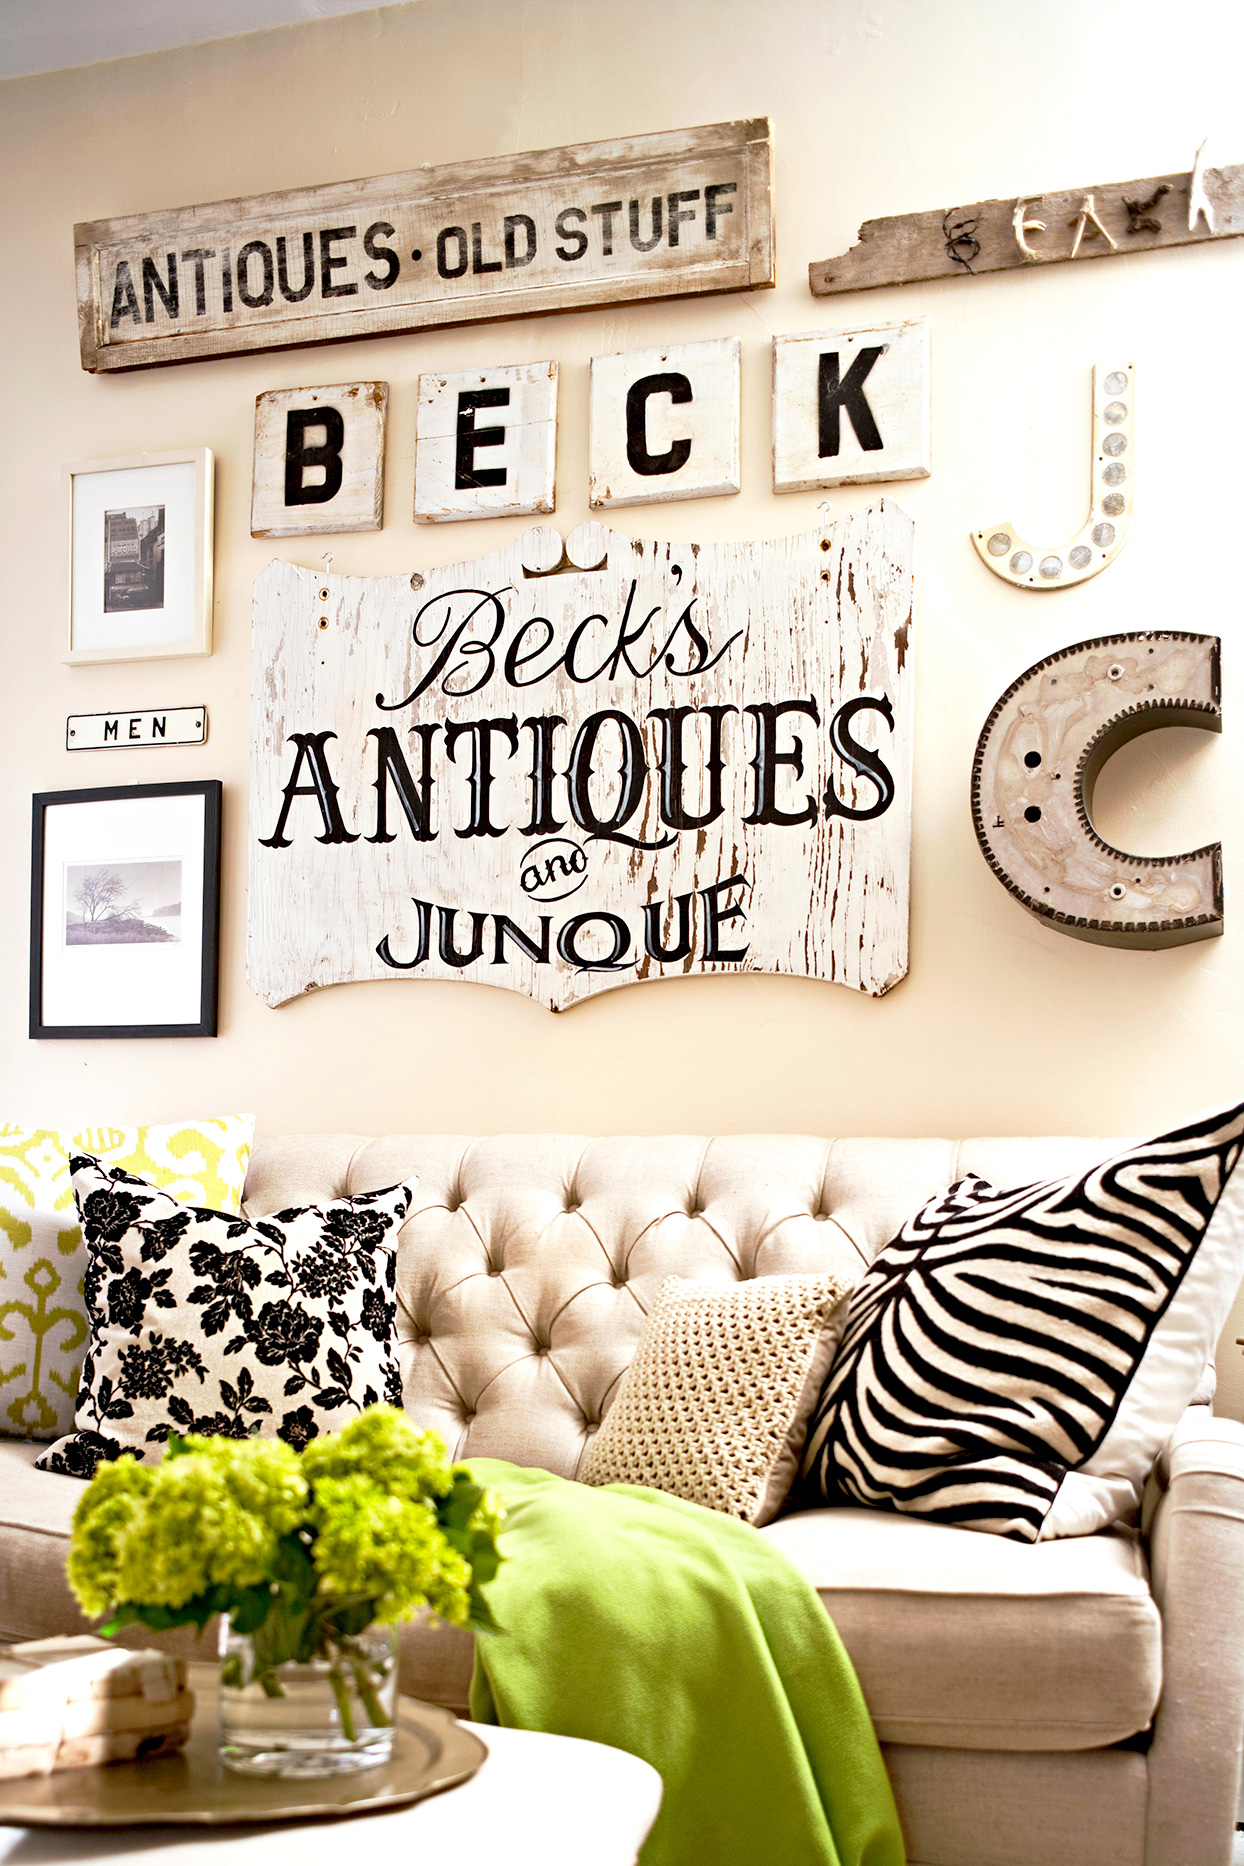 Antique signage in black and white over tufted sofa